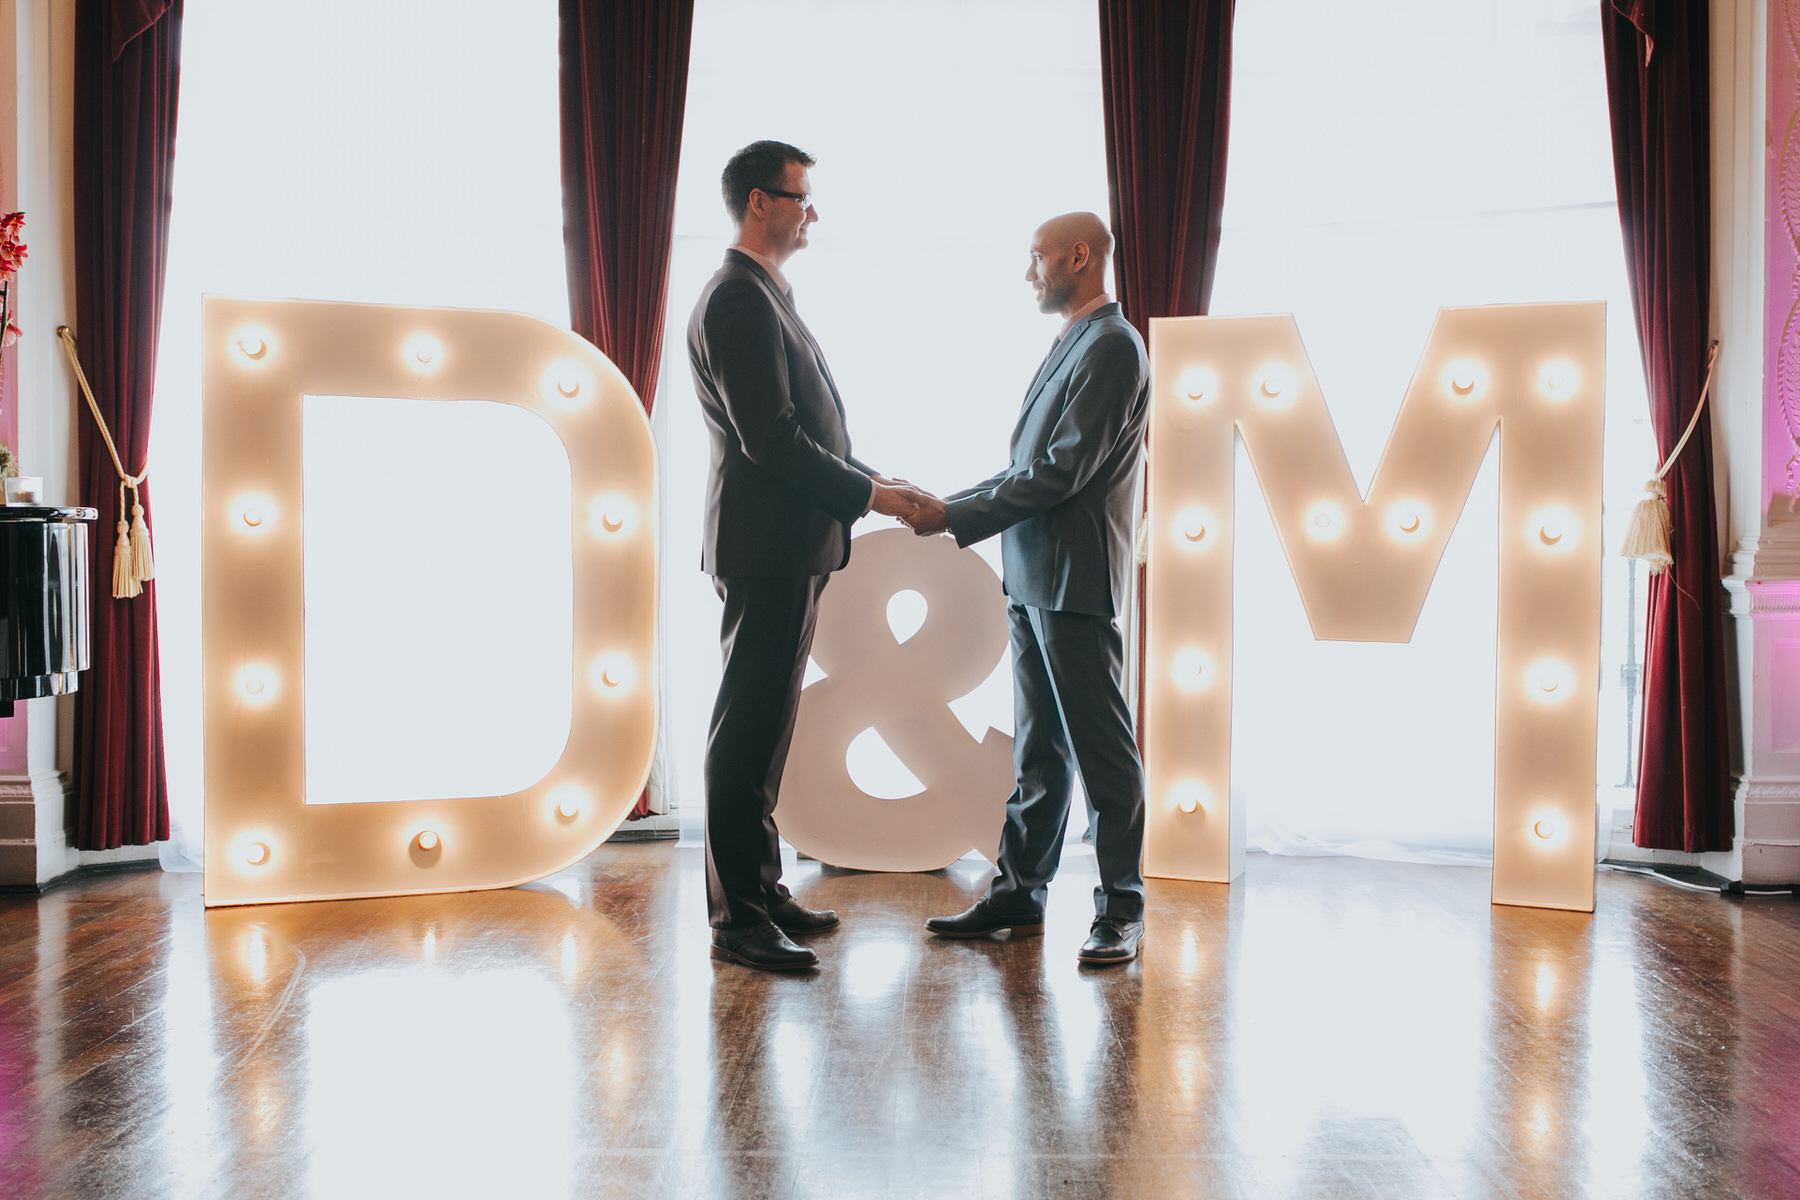 74 Same sex couple holding hands ceremony against large letters backdrop.jpg